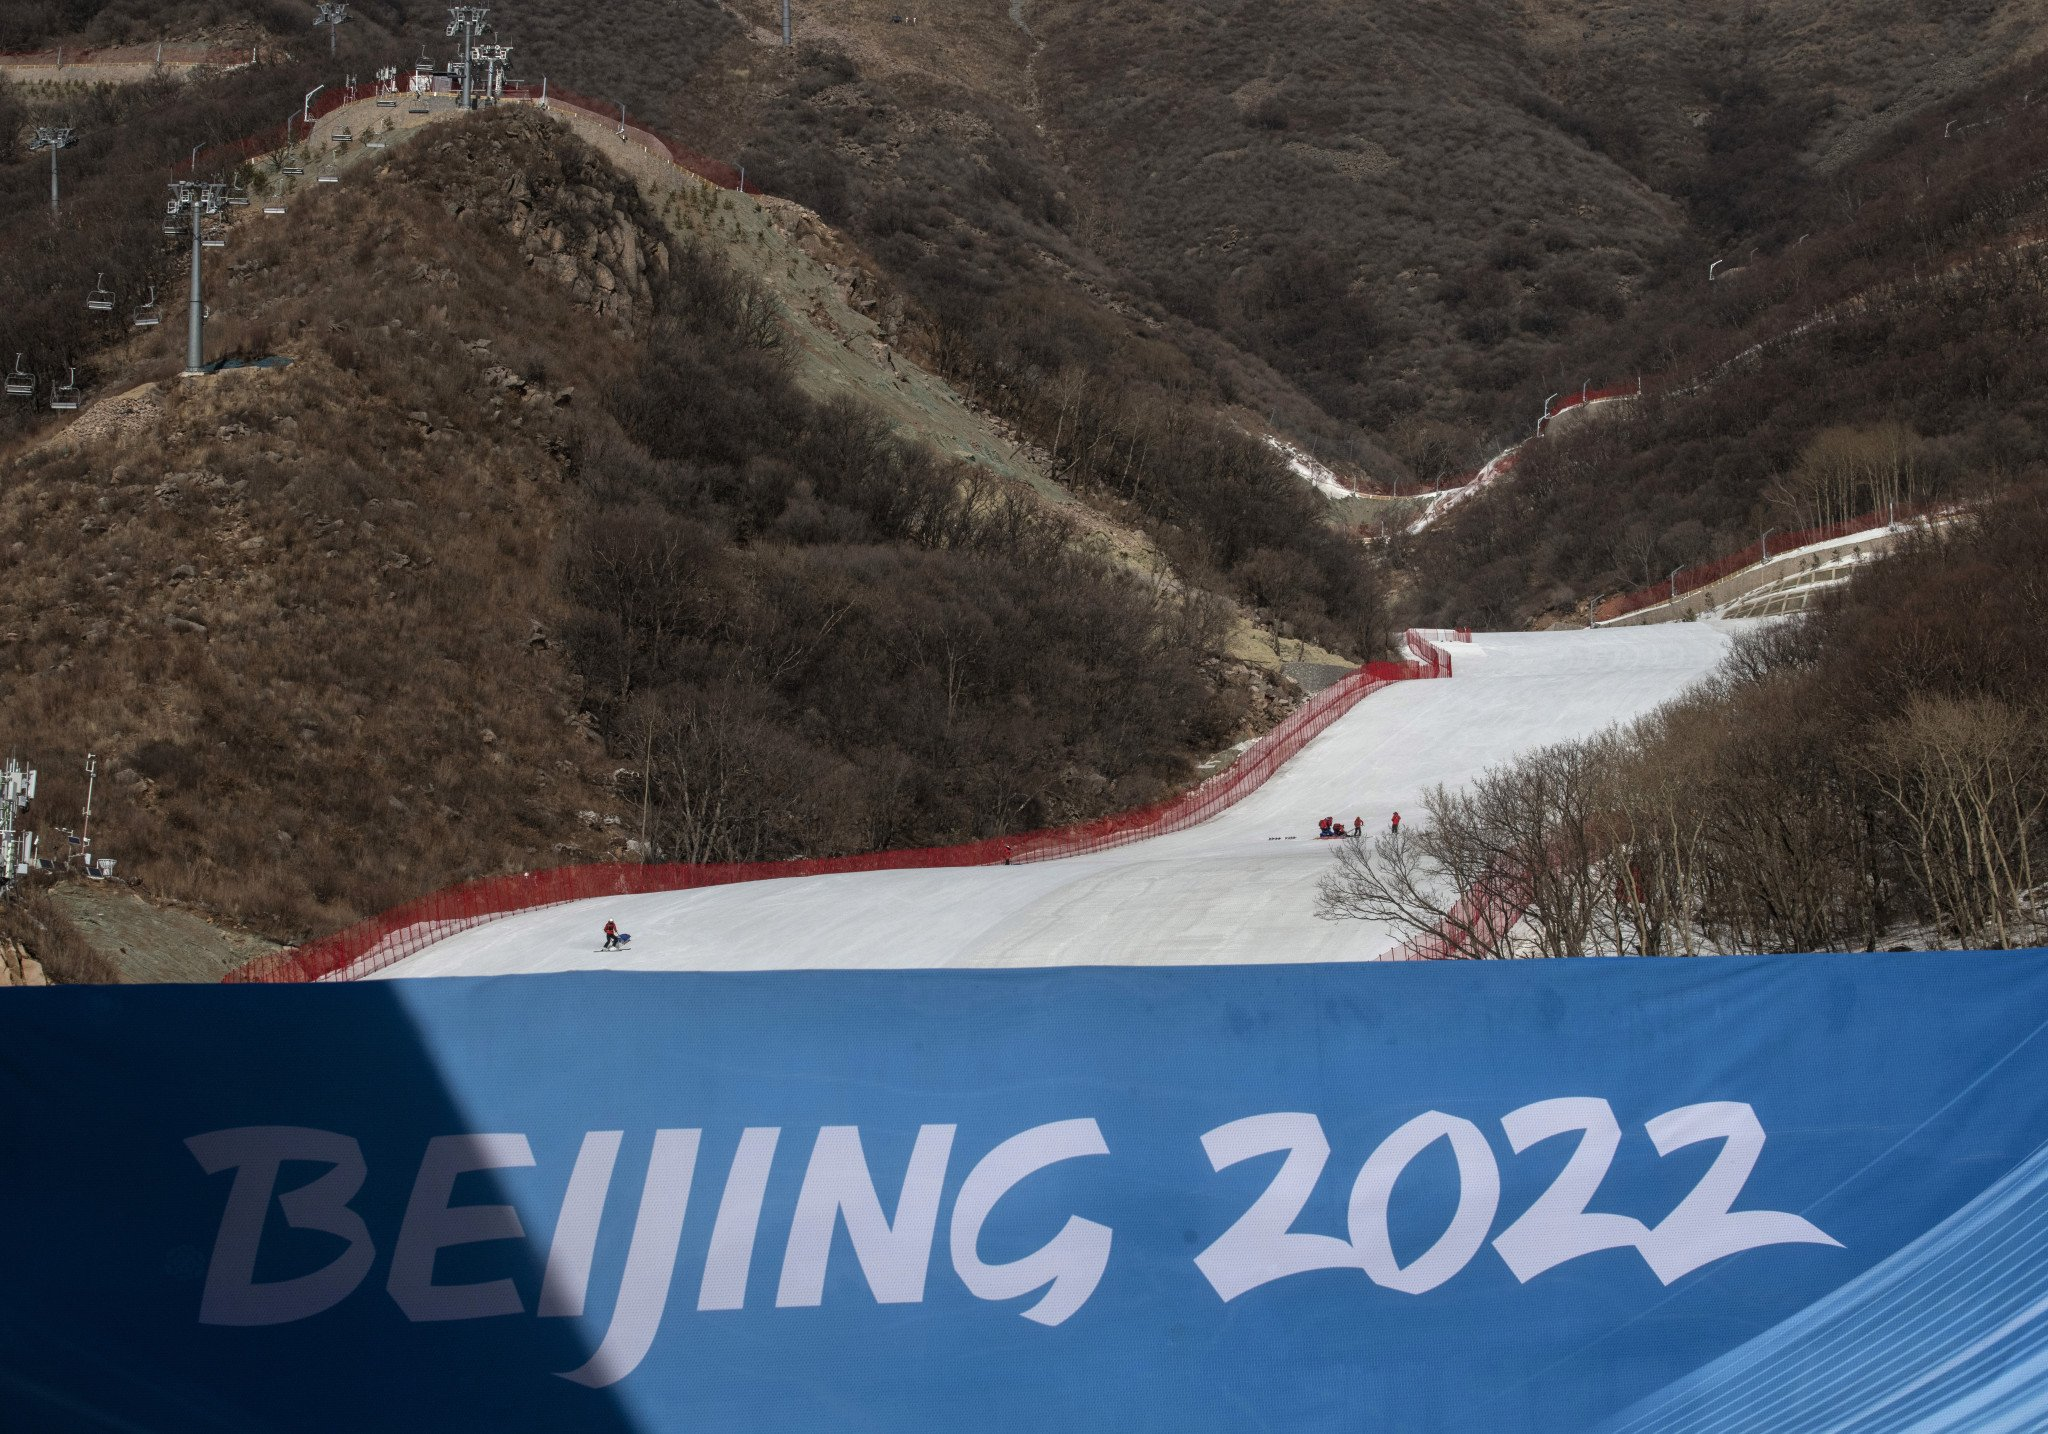 The IOC has expressed confidence in China's attempts to become established as a world-class destination for winter sports ©Getty Images